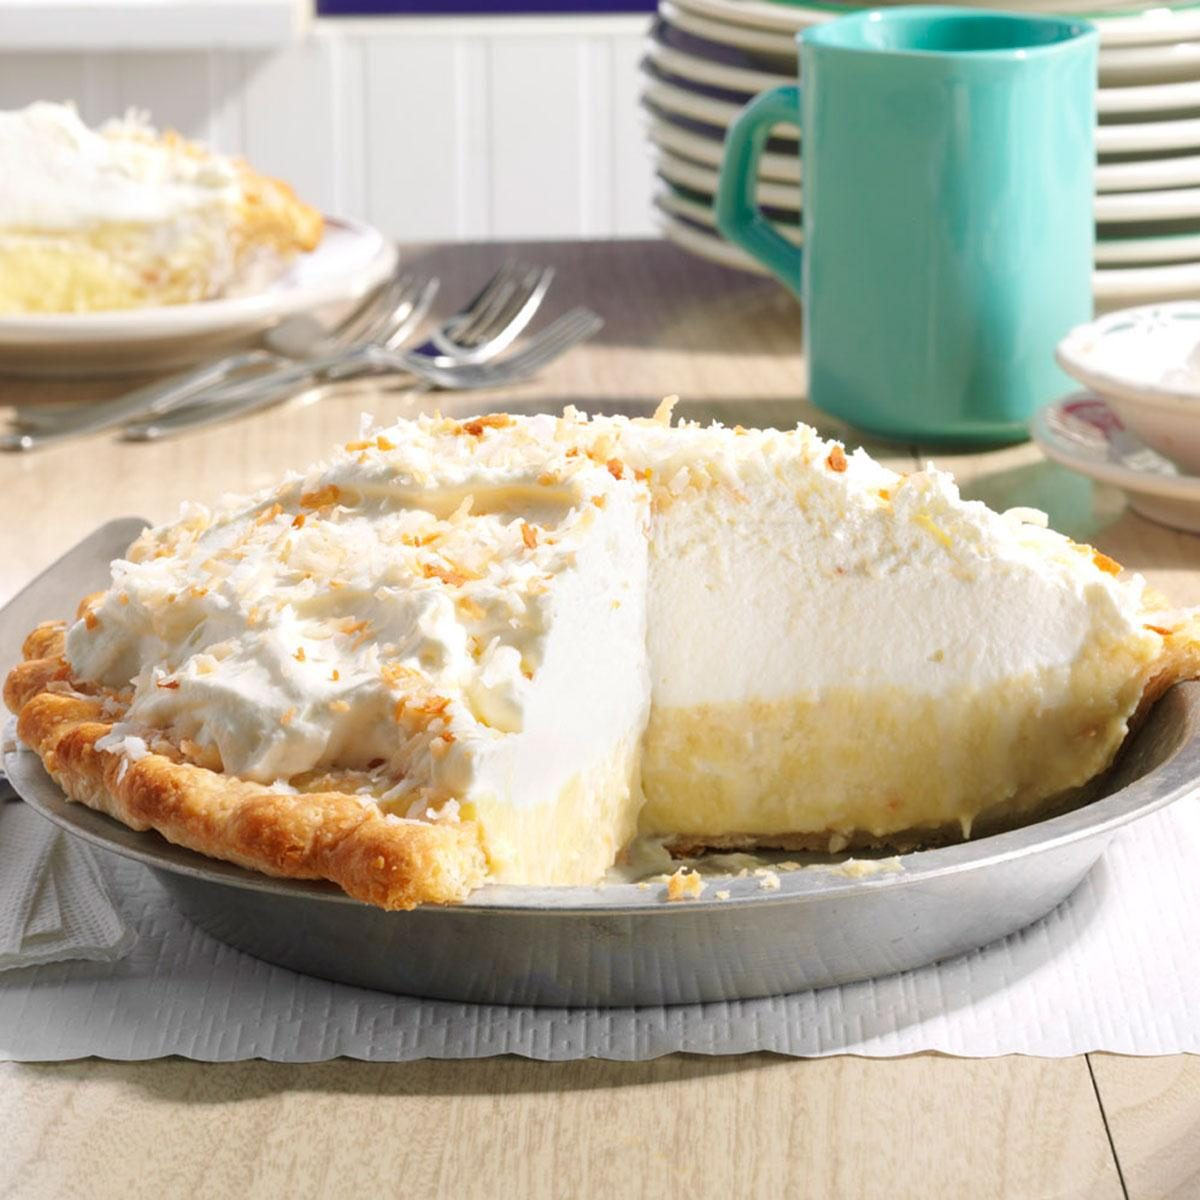 Inspired by: Bakers Square Coconut Cream Pie